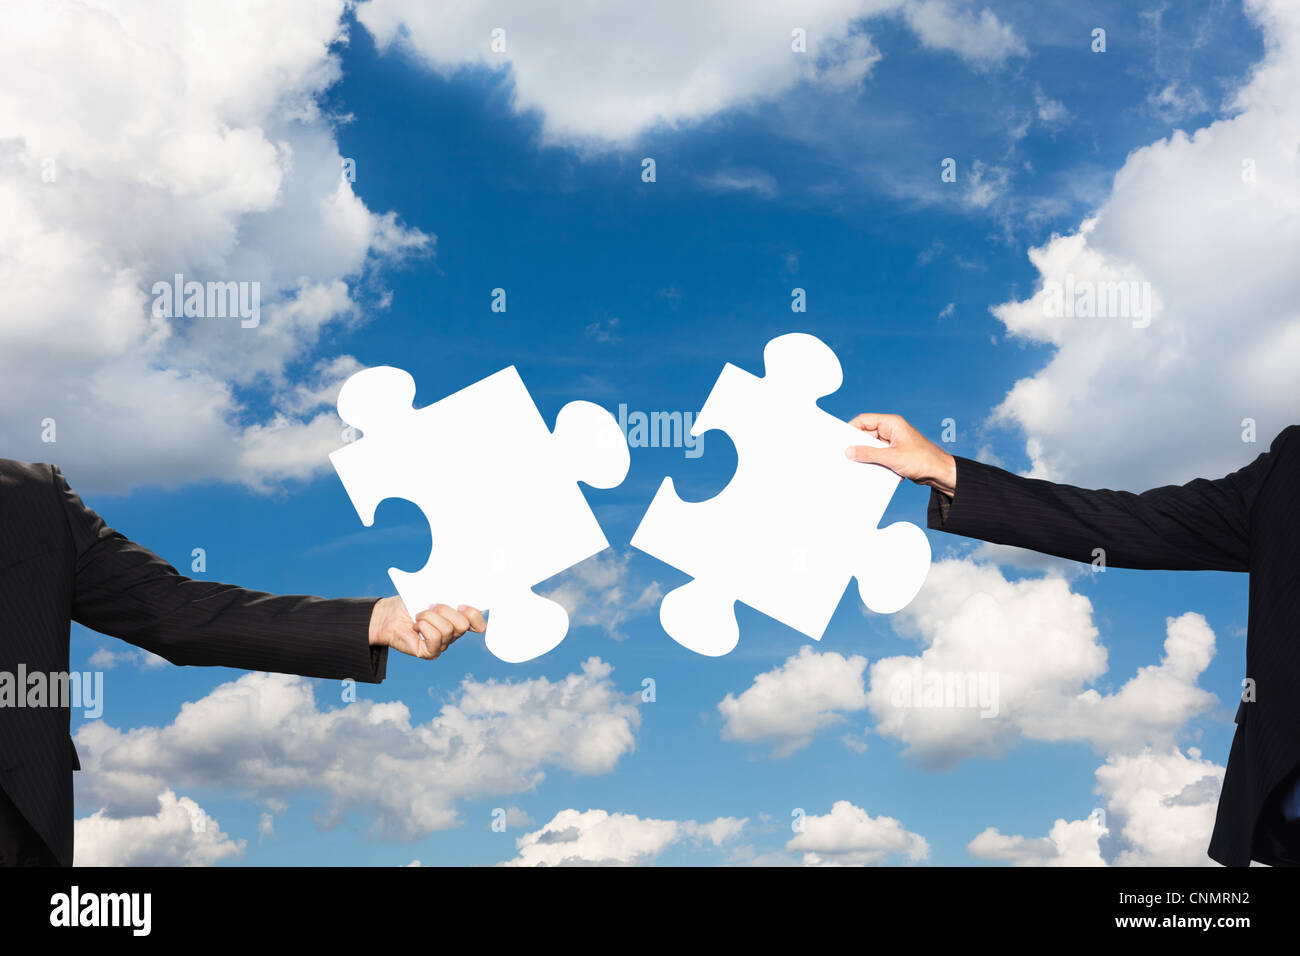 Businesspeople holding puzzle pieces - Stock Image